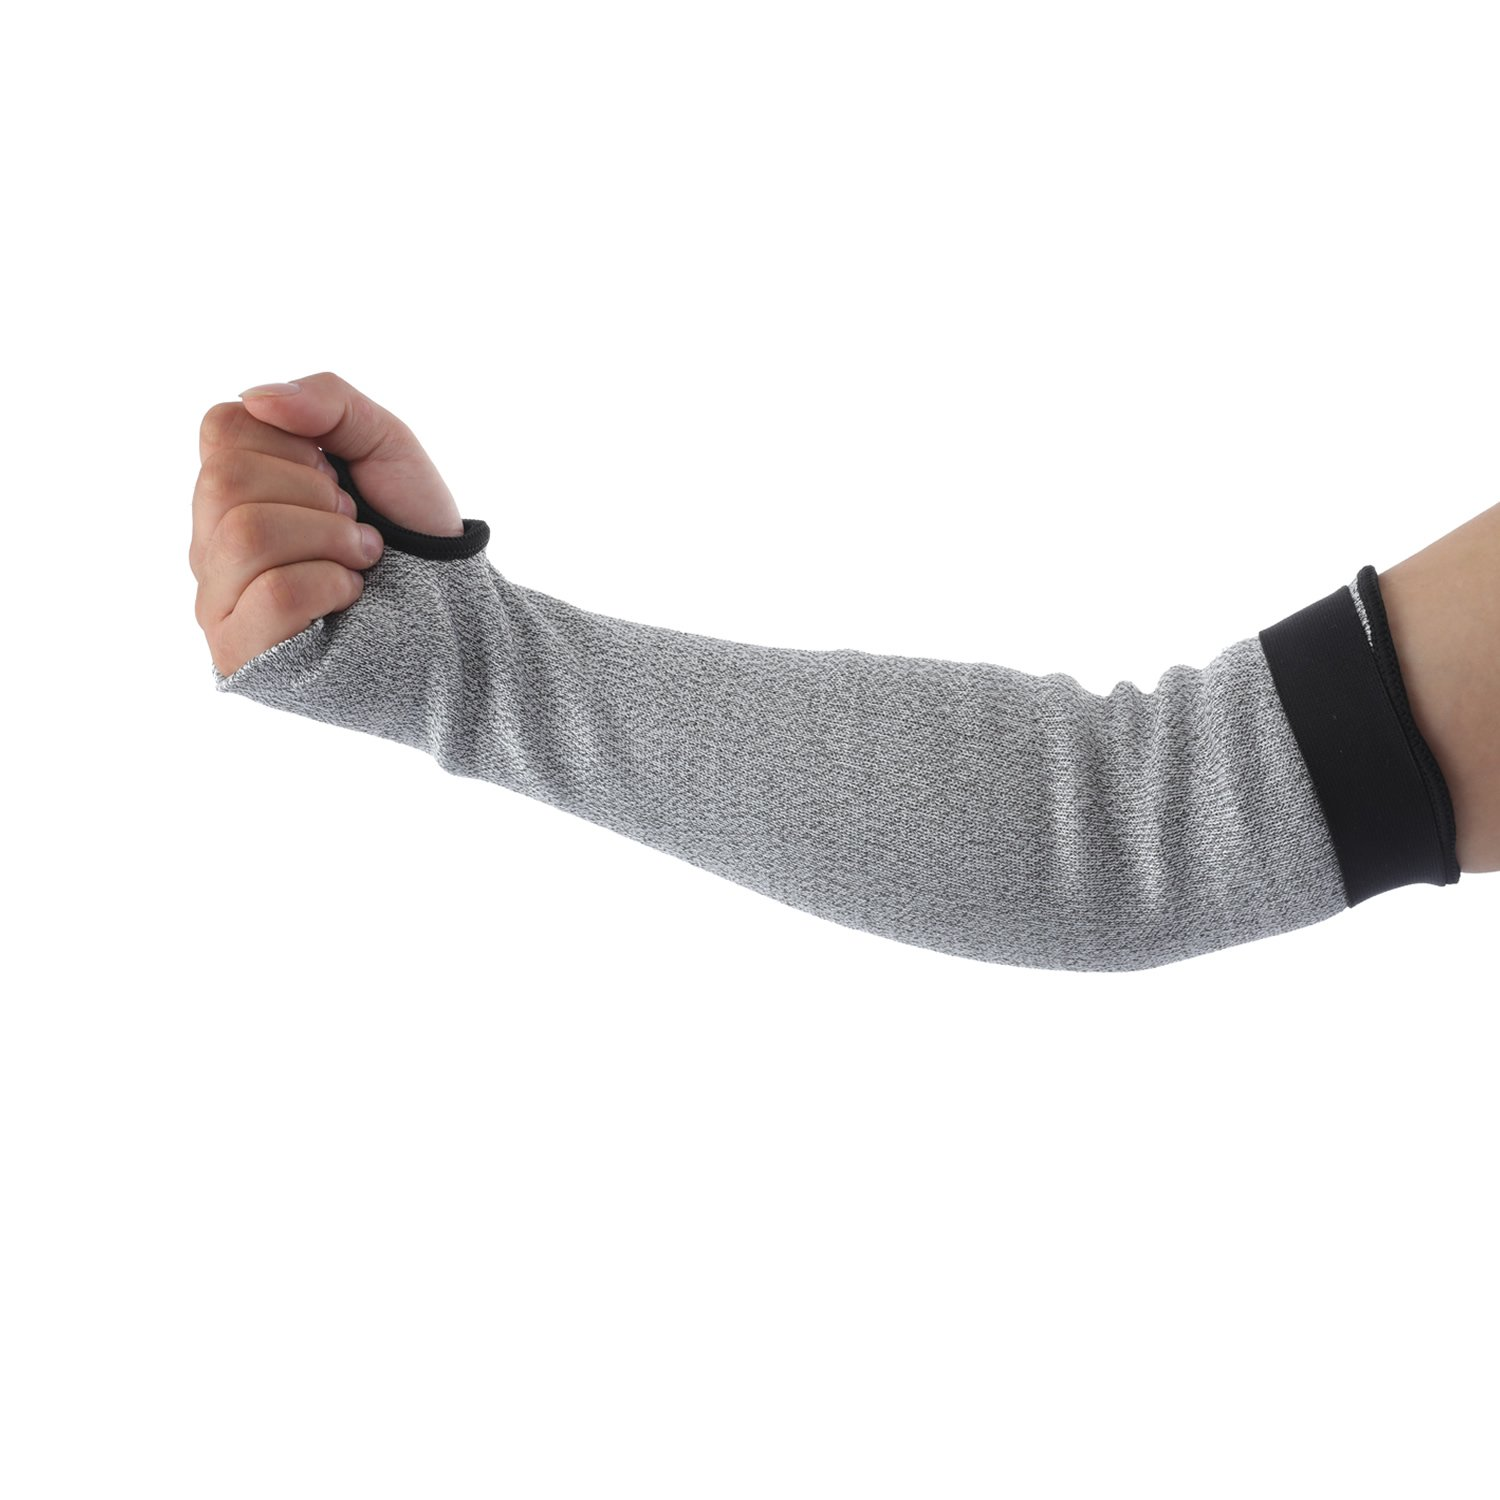 Anti Cut Resistant Arm Sleeves Double Ply - BONLEX 18Inch HPPE Extra Long & Velcro Cut Resistant Knit Sleeves,Level 5 Protection, Slash Resistant Sleeves with Thumb Slot Helps Prevent Scrapes,1 Pair